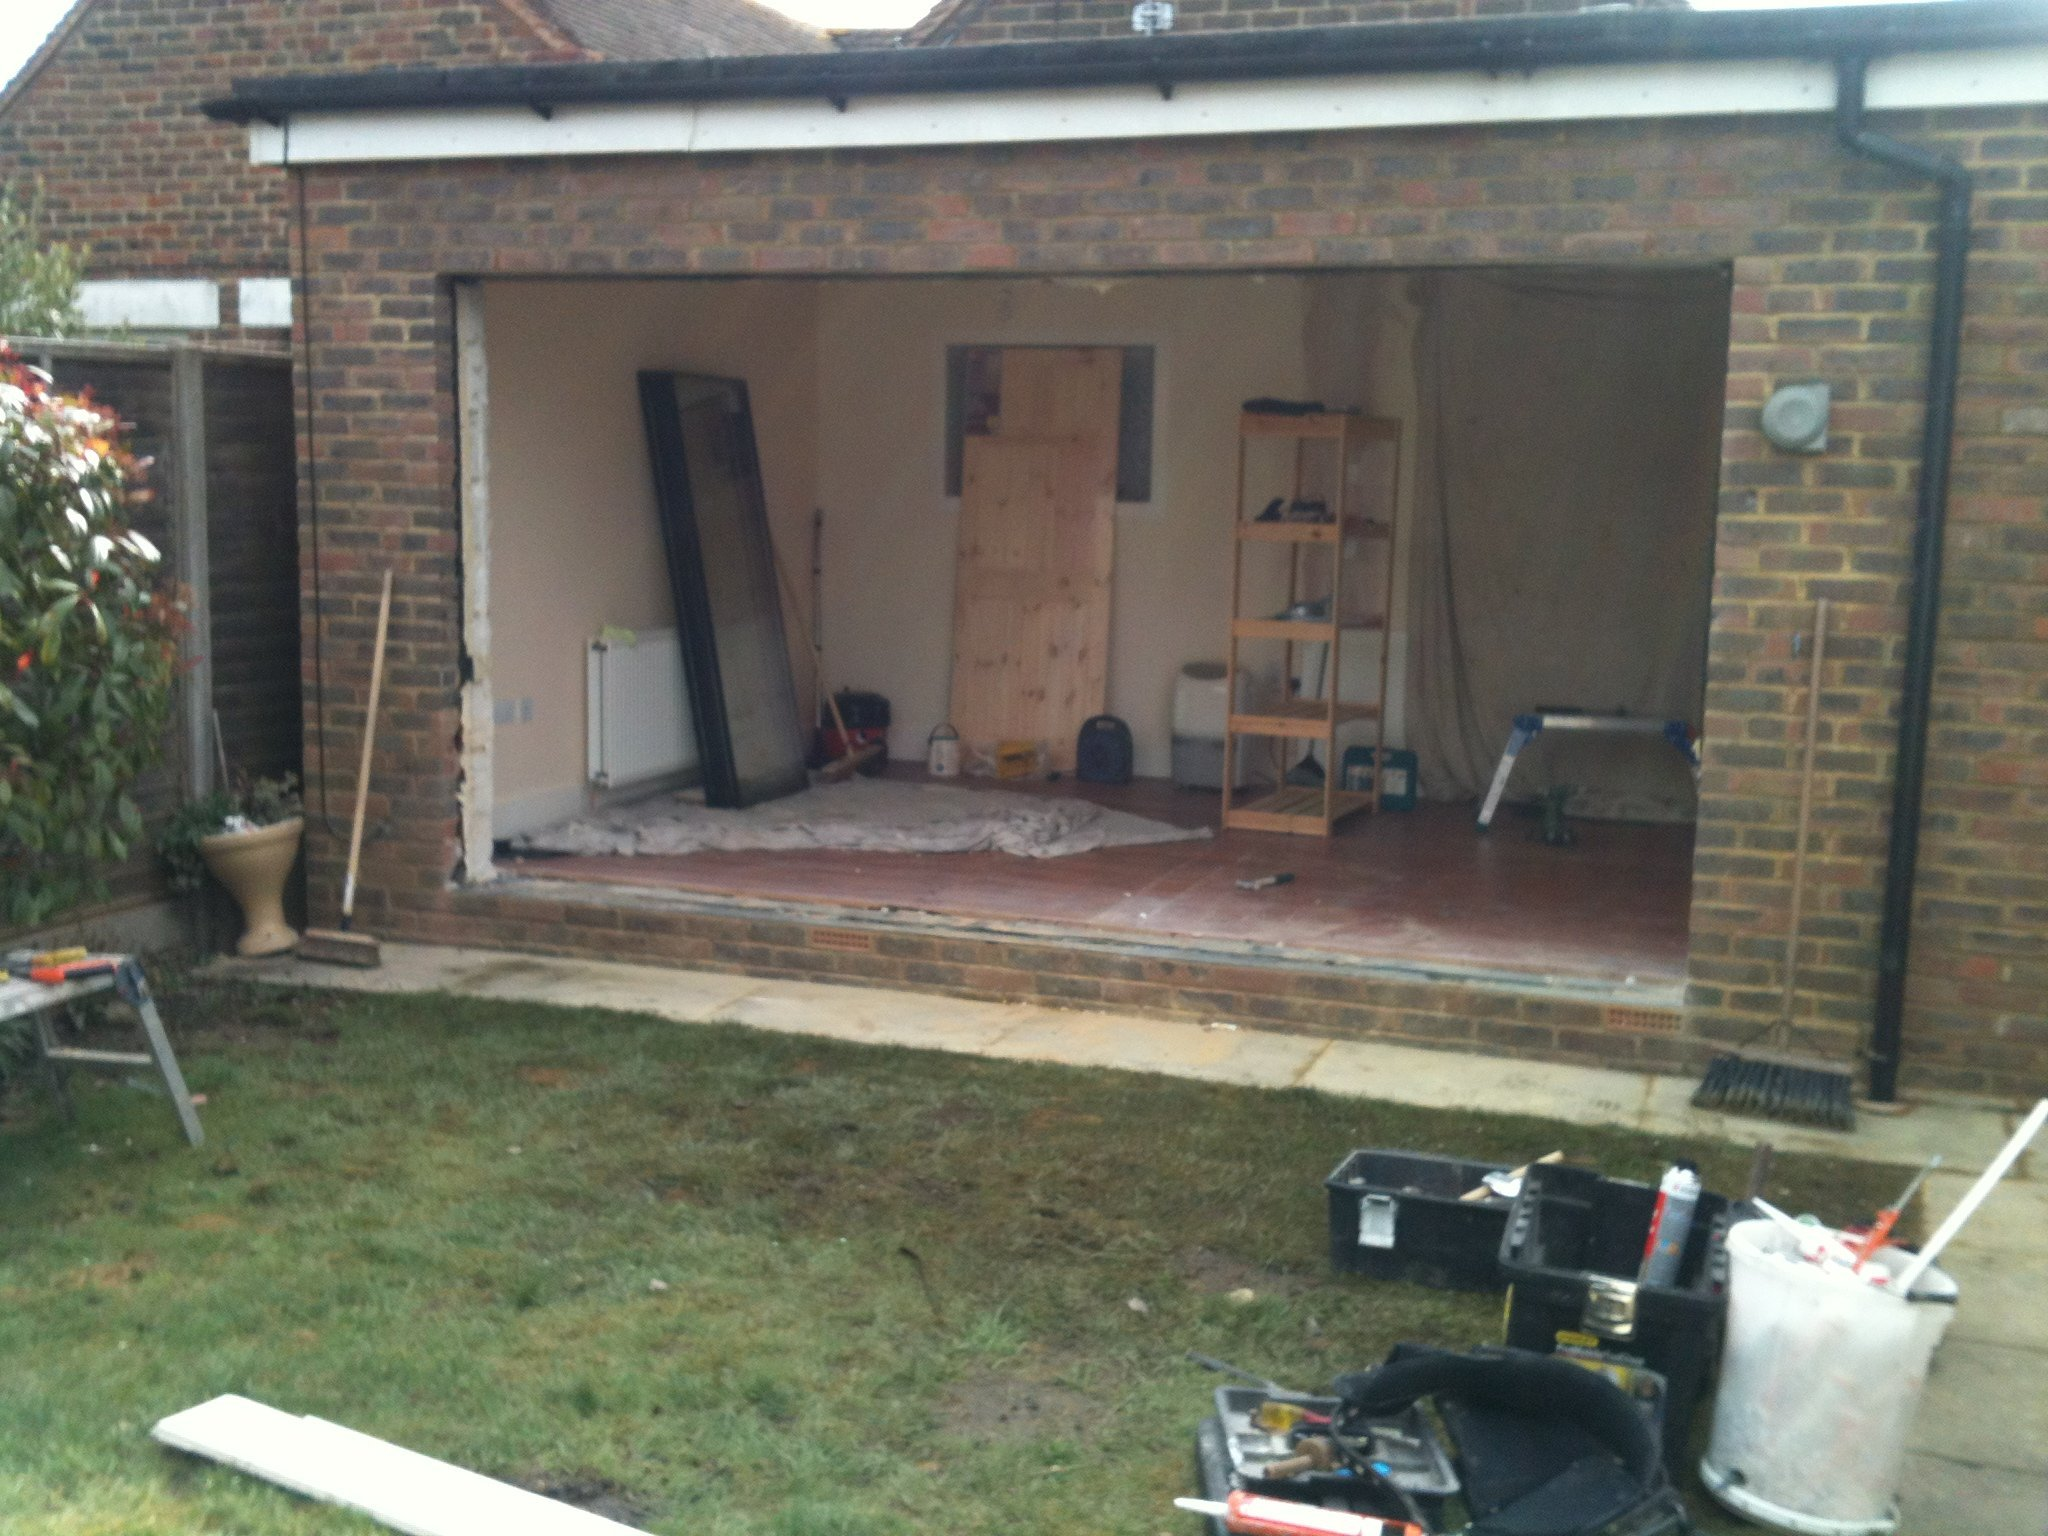 Construction underway of a conservatory